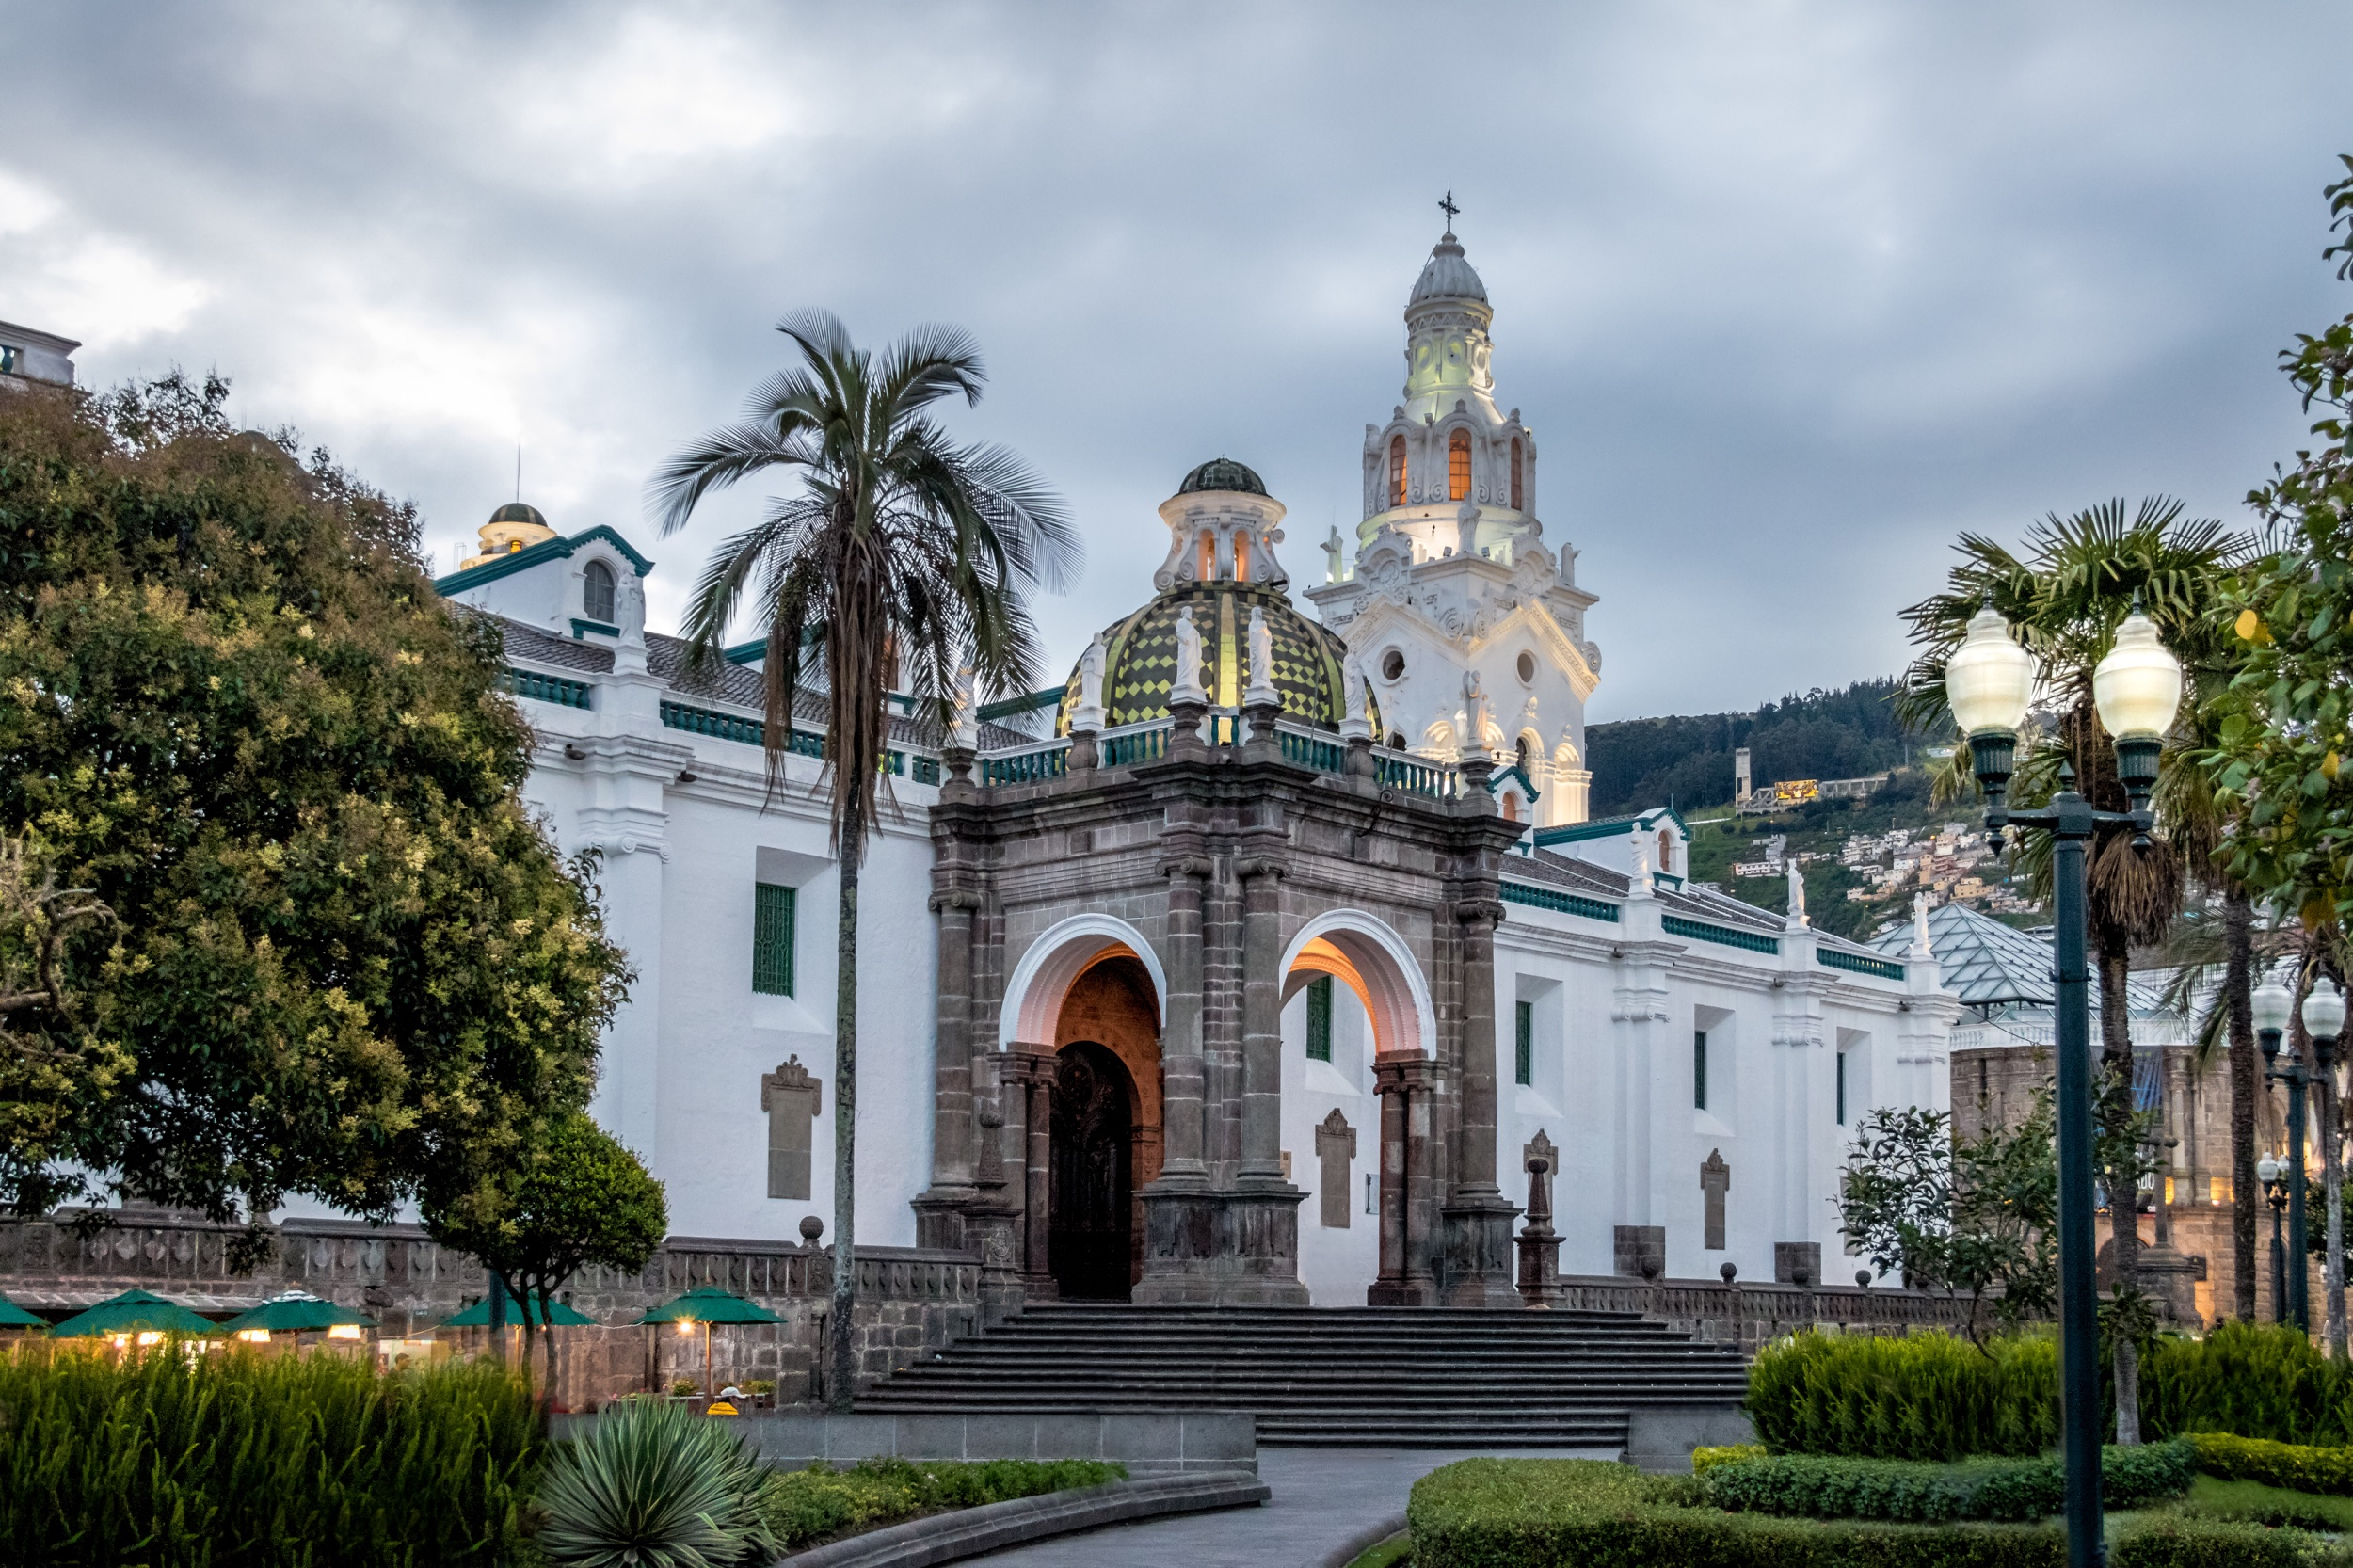 2) Metropolitan Cathedral of Quito: